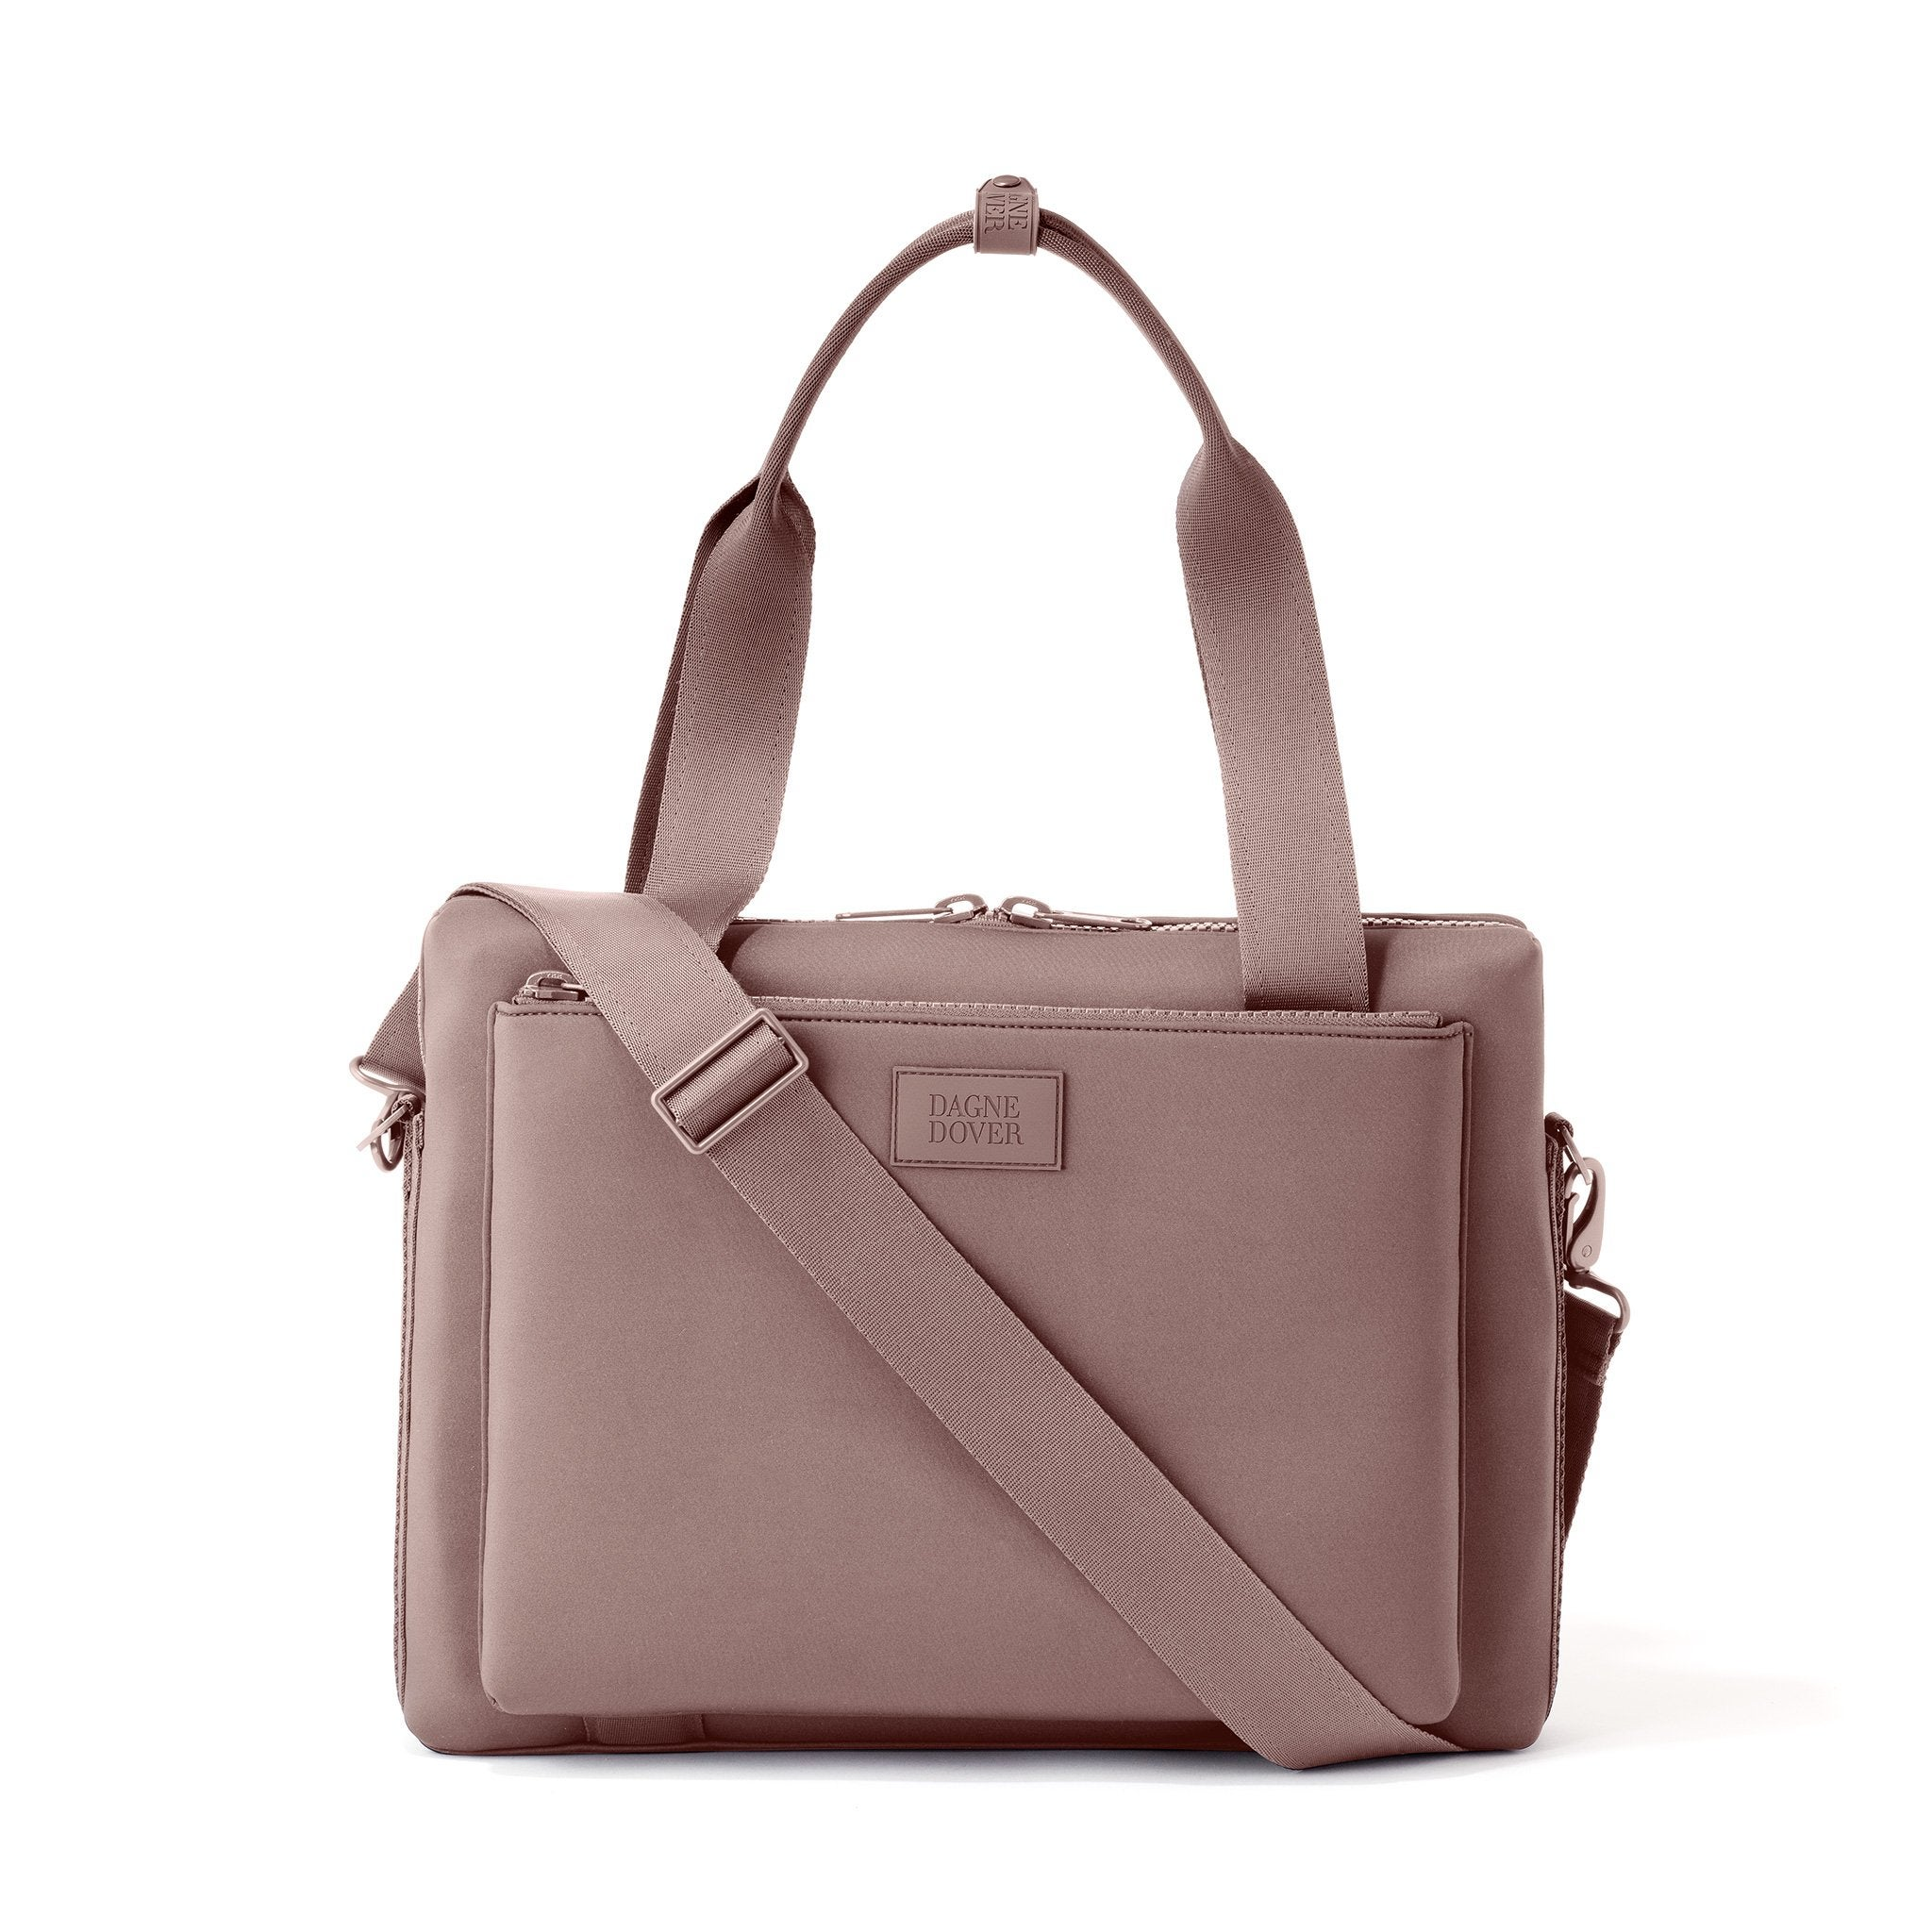 Dagne Dover Ryan Laptop Bag